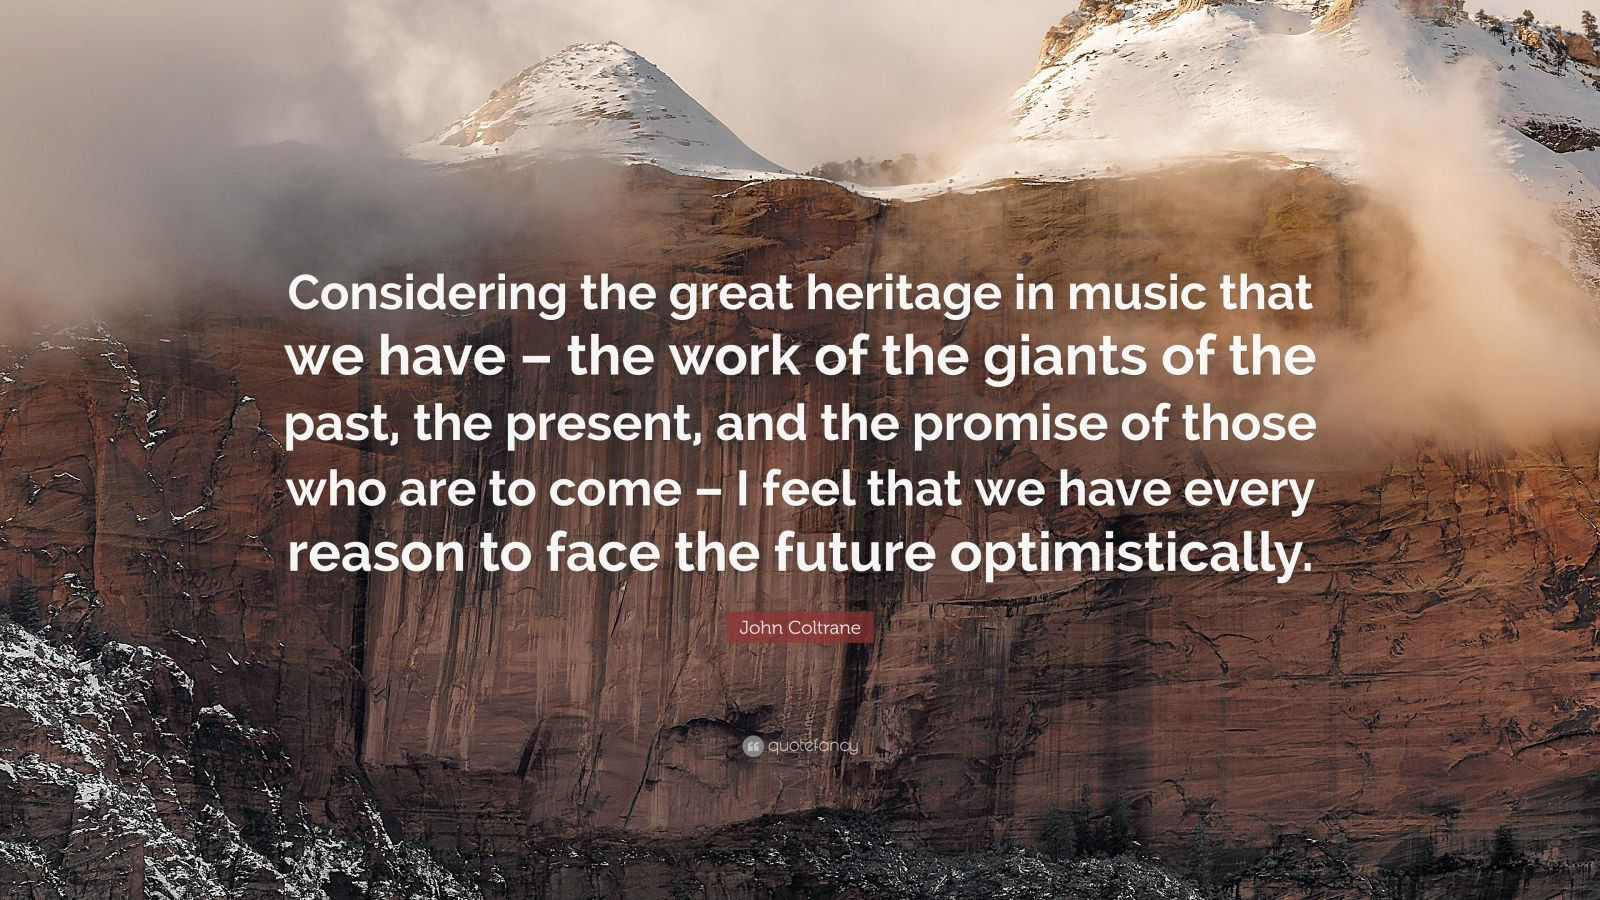 """John Coltrane Quote: """"Considering the great heritage in music that we have – the work of the giants of the past, the present, and the promise of those who are to come – I feel that we have every reason to face the future optimistically."""""""